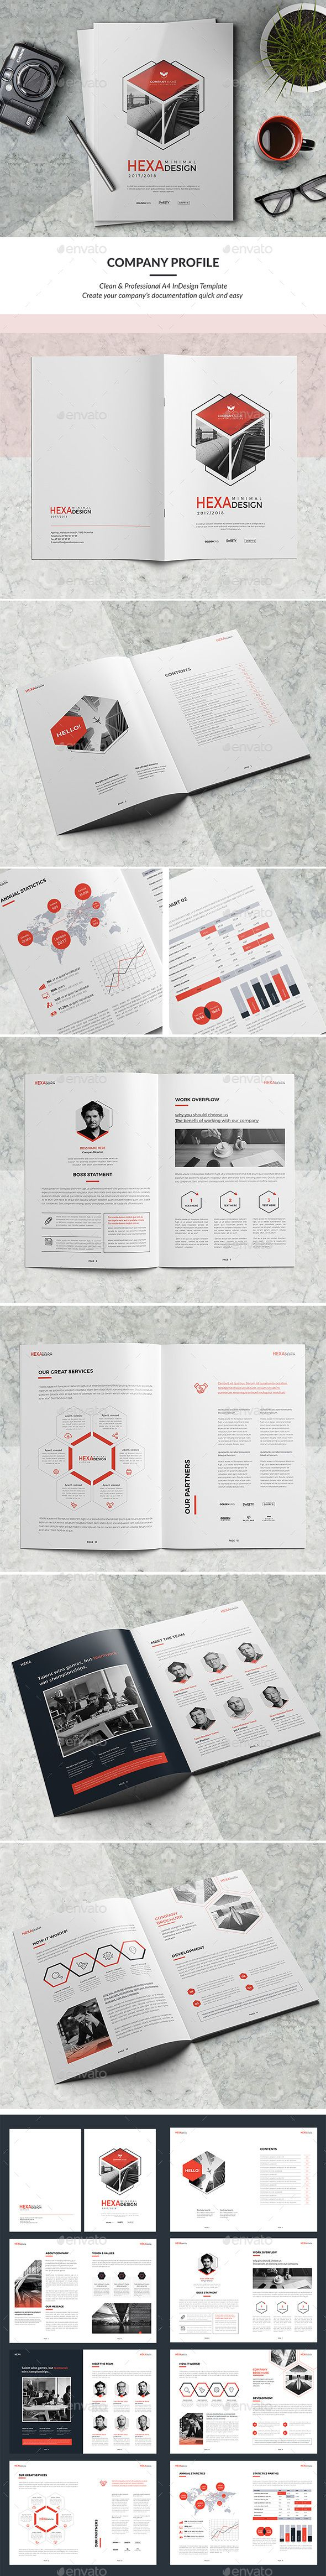 Minimal Company Profile — InDesign INDD #brochure design #creative • Download ➝ https://graphicriver.net/item/minimal-company-profile/19260716?ref=pxcr